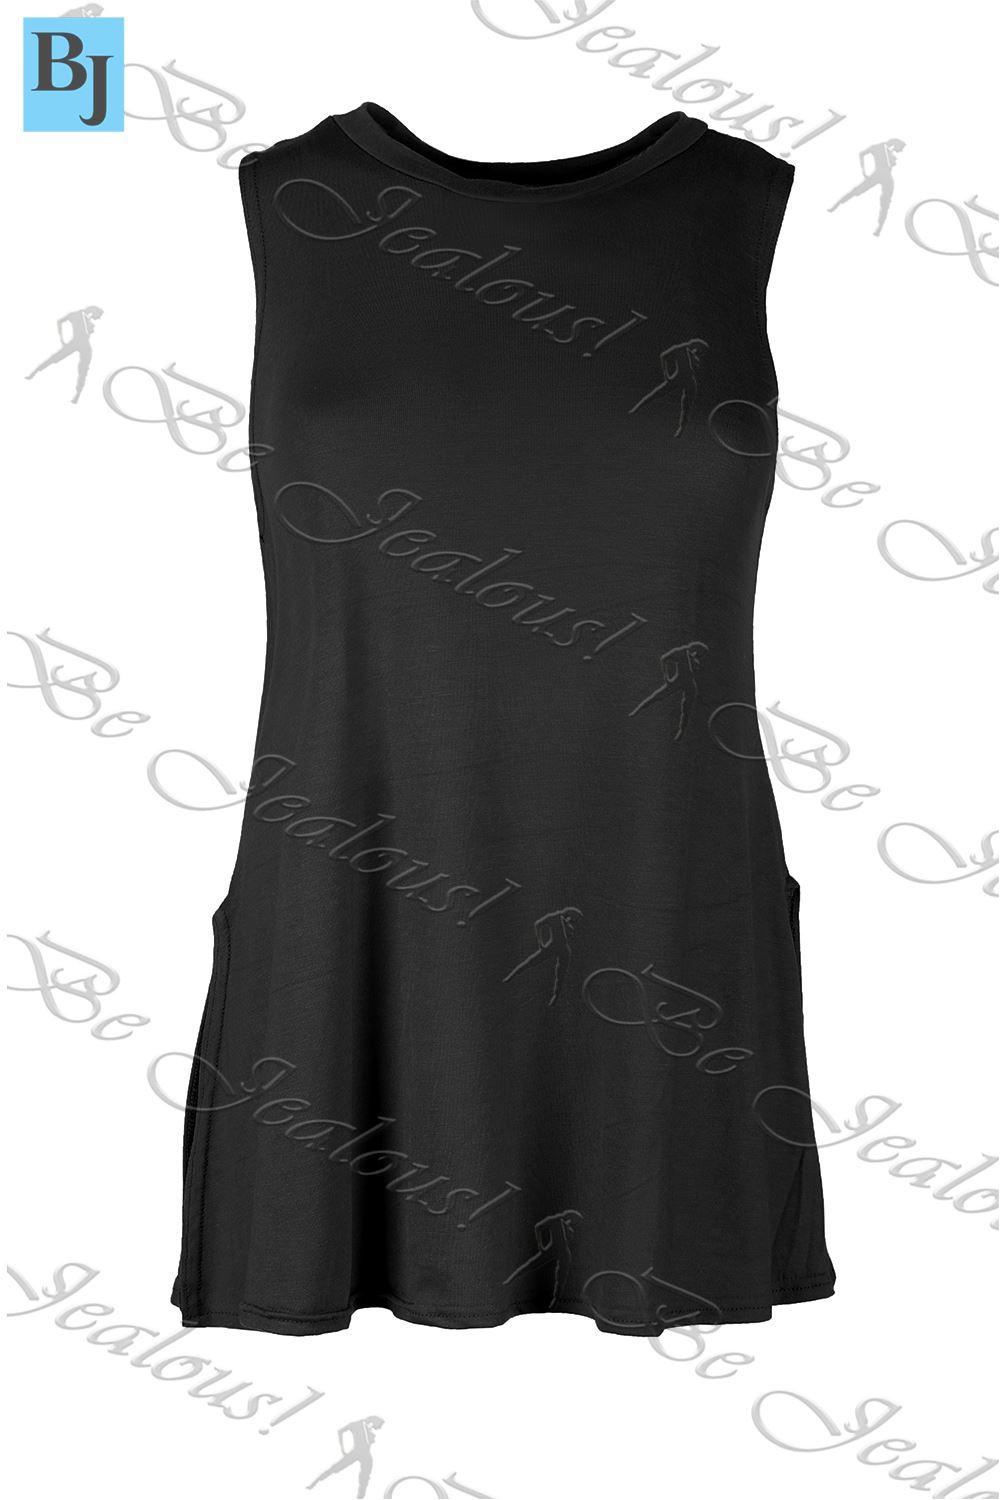 Black dress vest ebay